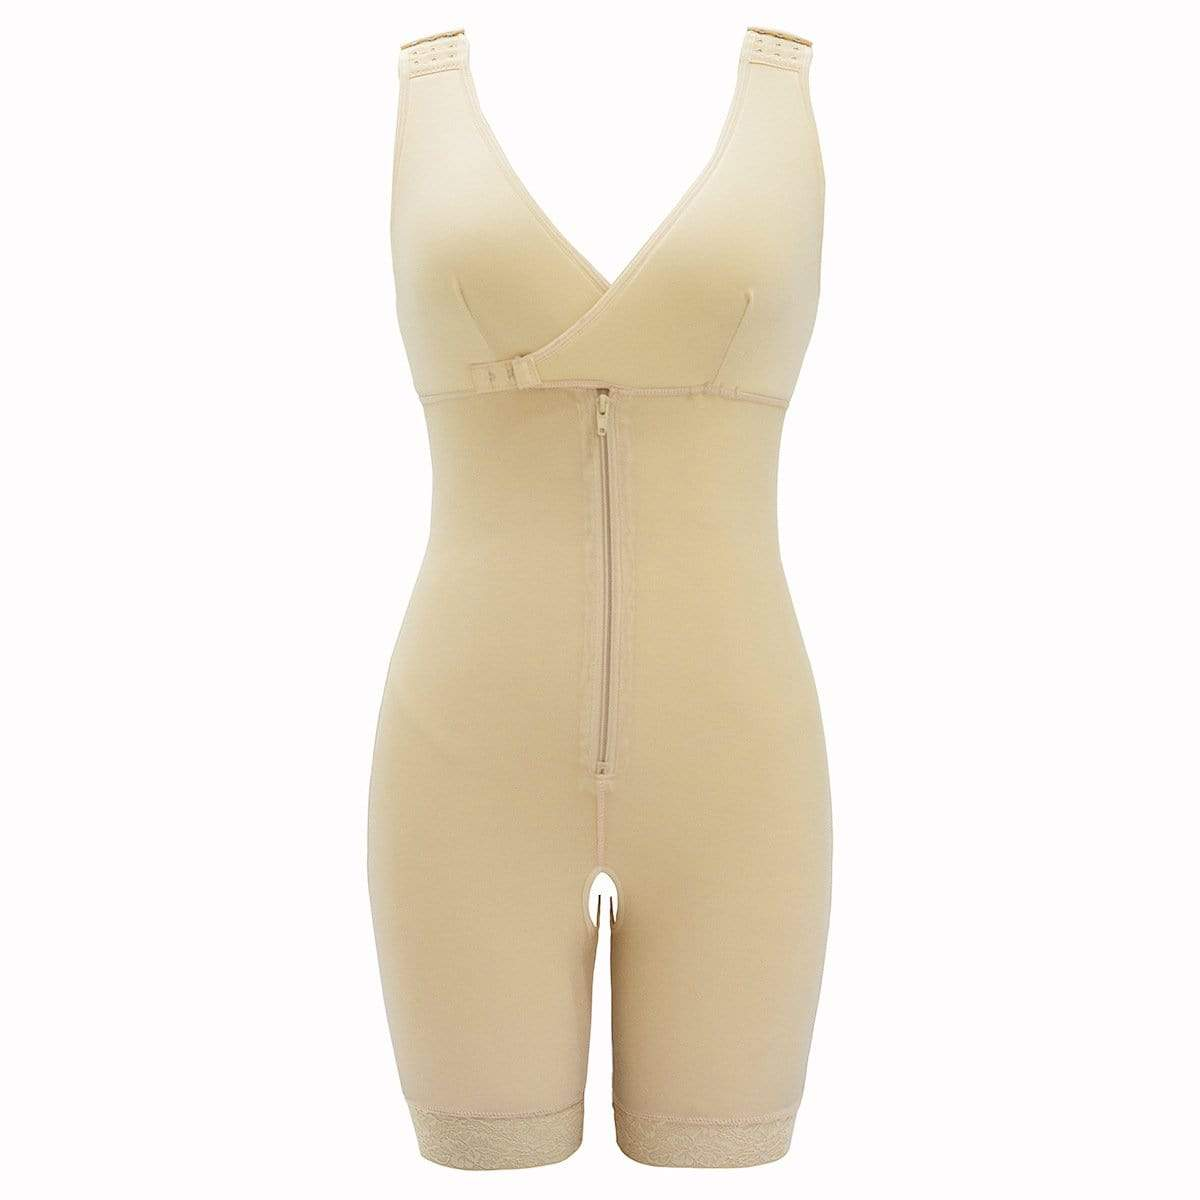 GOOPSS Shapewear White / 3XL One-piece waist-length hip shapers